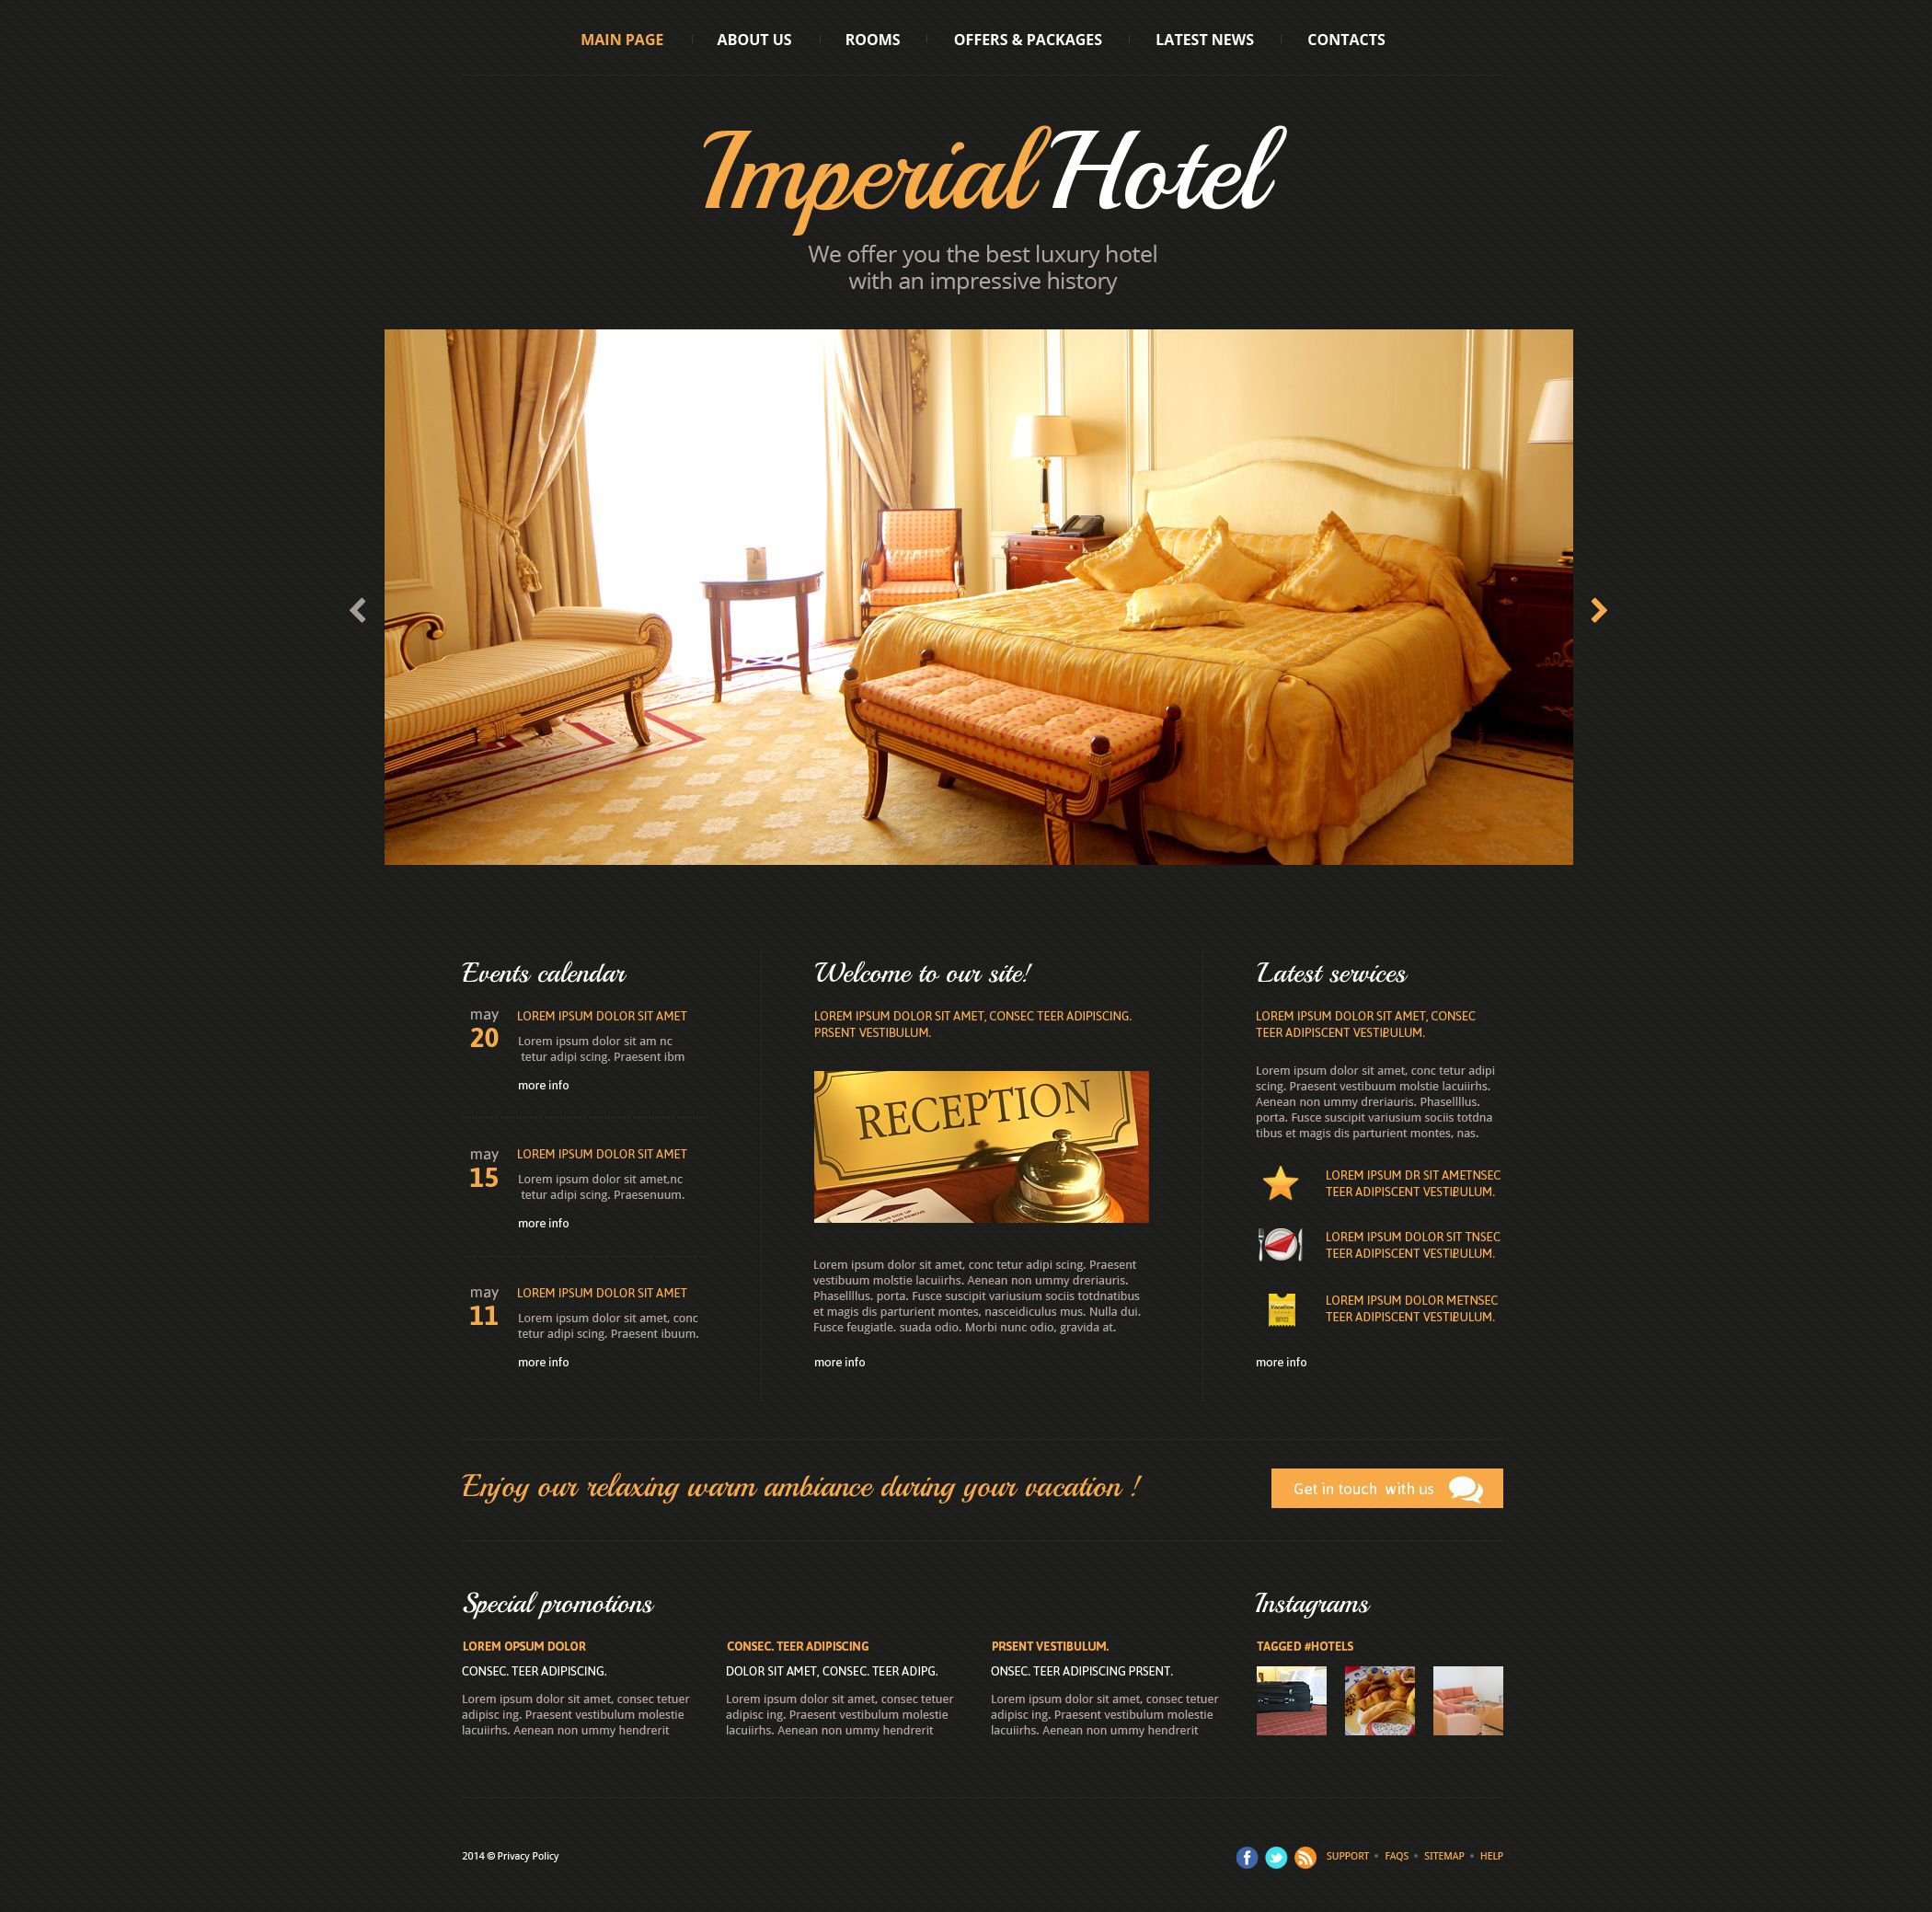 The Hotel Booking Responsive Javascript Animated Design 52982, one of the best website templates of its kind (hotels, most popular), also known as hotel booking website template, motel website template, template website template, building website template, events website template, interior website template, cozy website template, comfortable room website template, spacious website template, light website template, modern rest website template, pool website template, floor website template, stairs website template, staff website template, reception website template, testimonial website template, service website template, offer website template, booking website template, reservation website template, order website template, location website template, security website template, wedding website template, cerem and related with hotel booking, motel, template, building, events, interior, cozy, comfortable room, spacious, light, modern rest, pool, floor, stairs, staff, reception, testimonial, service, offer, booking, reservation, order, location, security, wedding, cerem, etc.